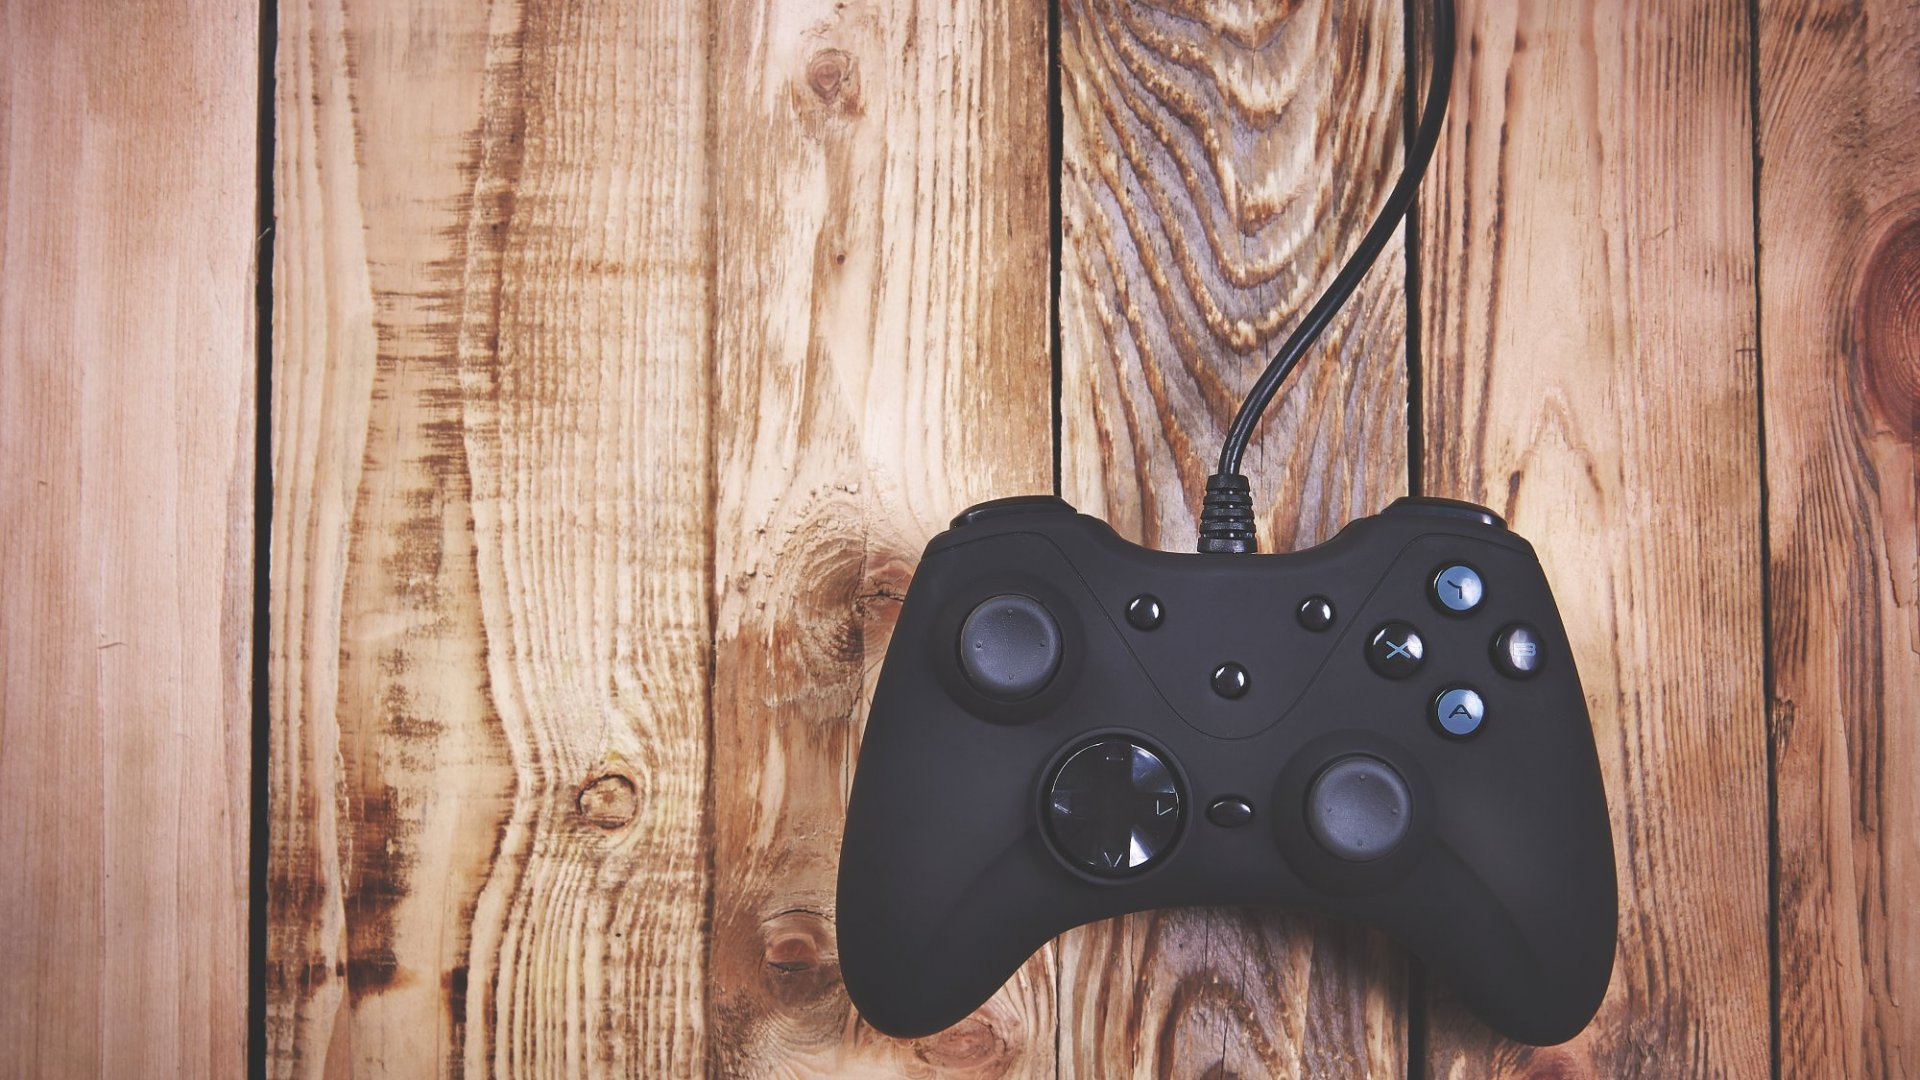 What Lessons Video Games Can Teach Us About Real Life